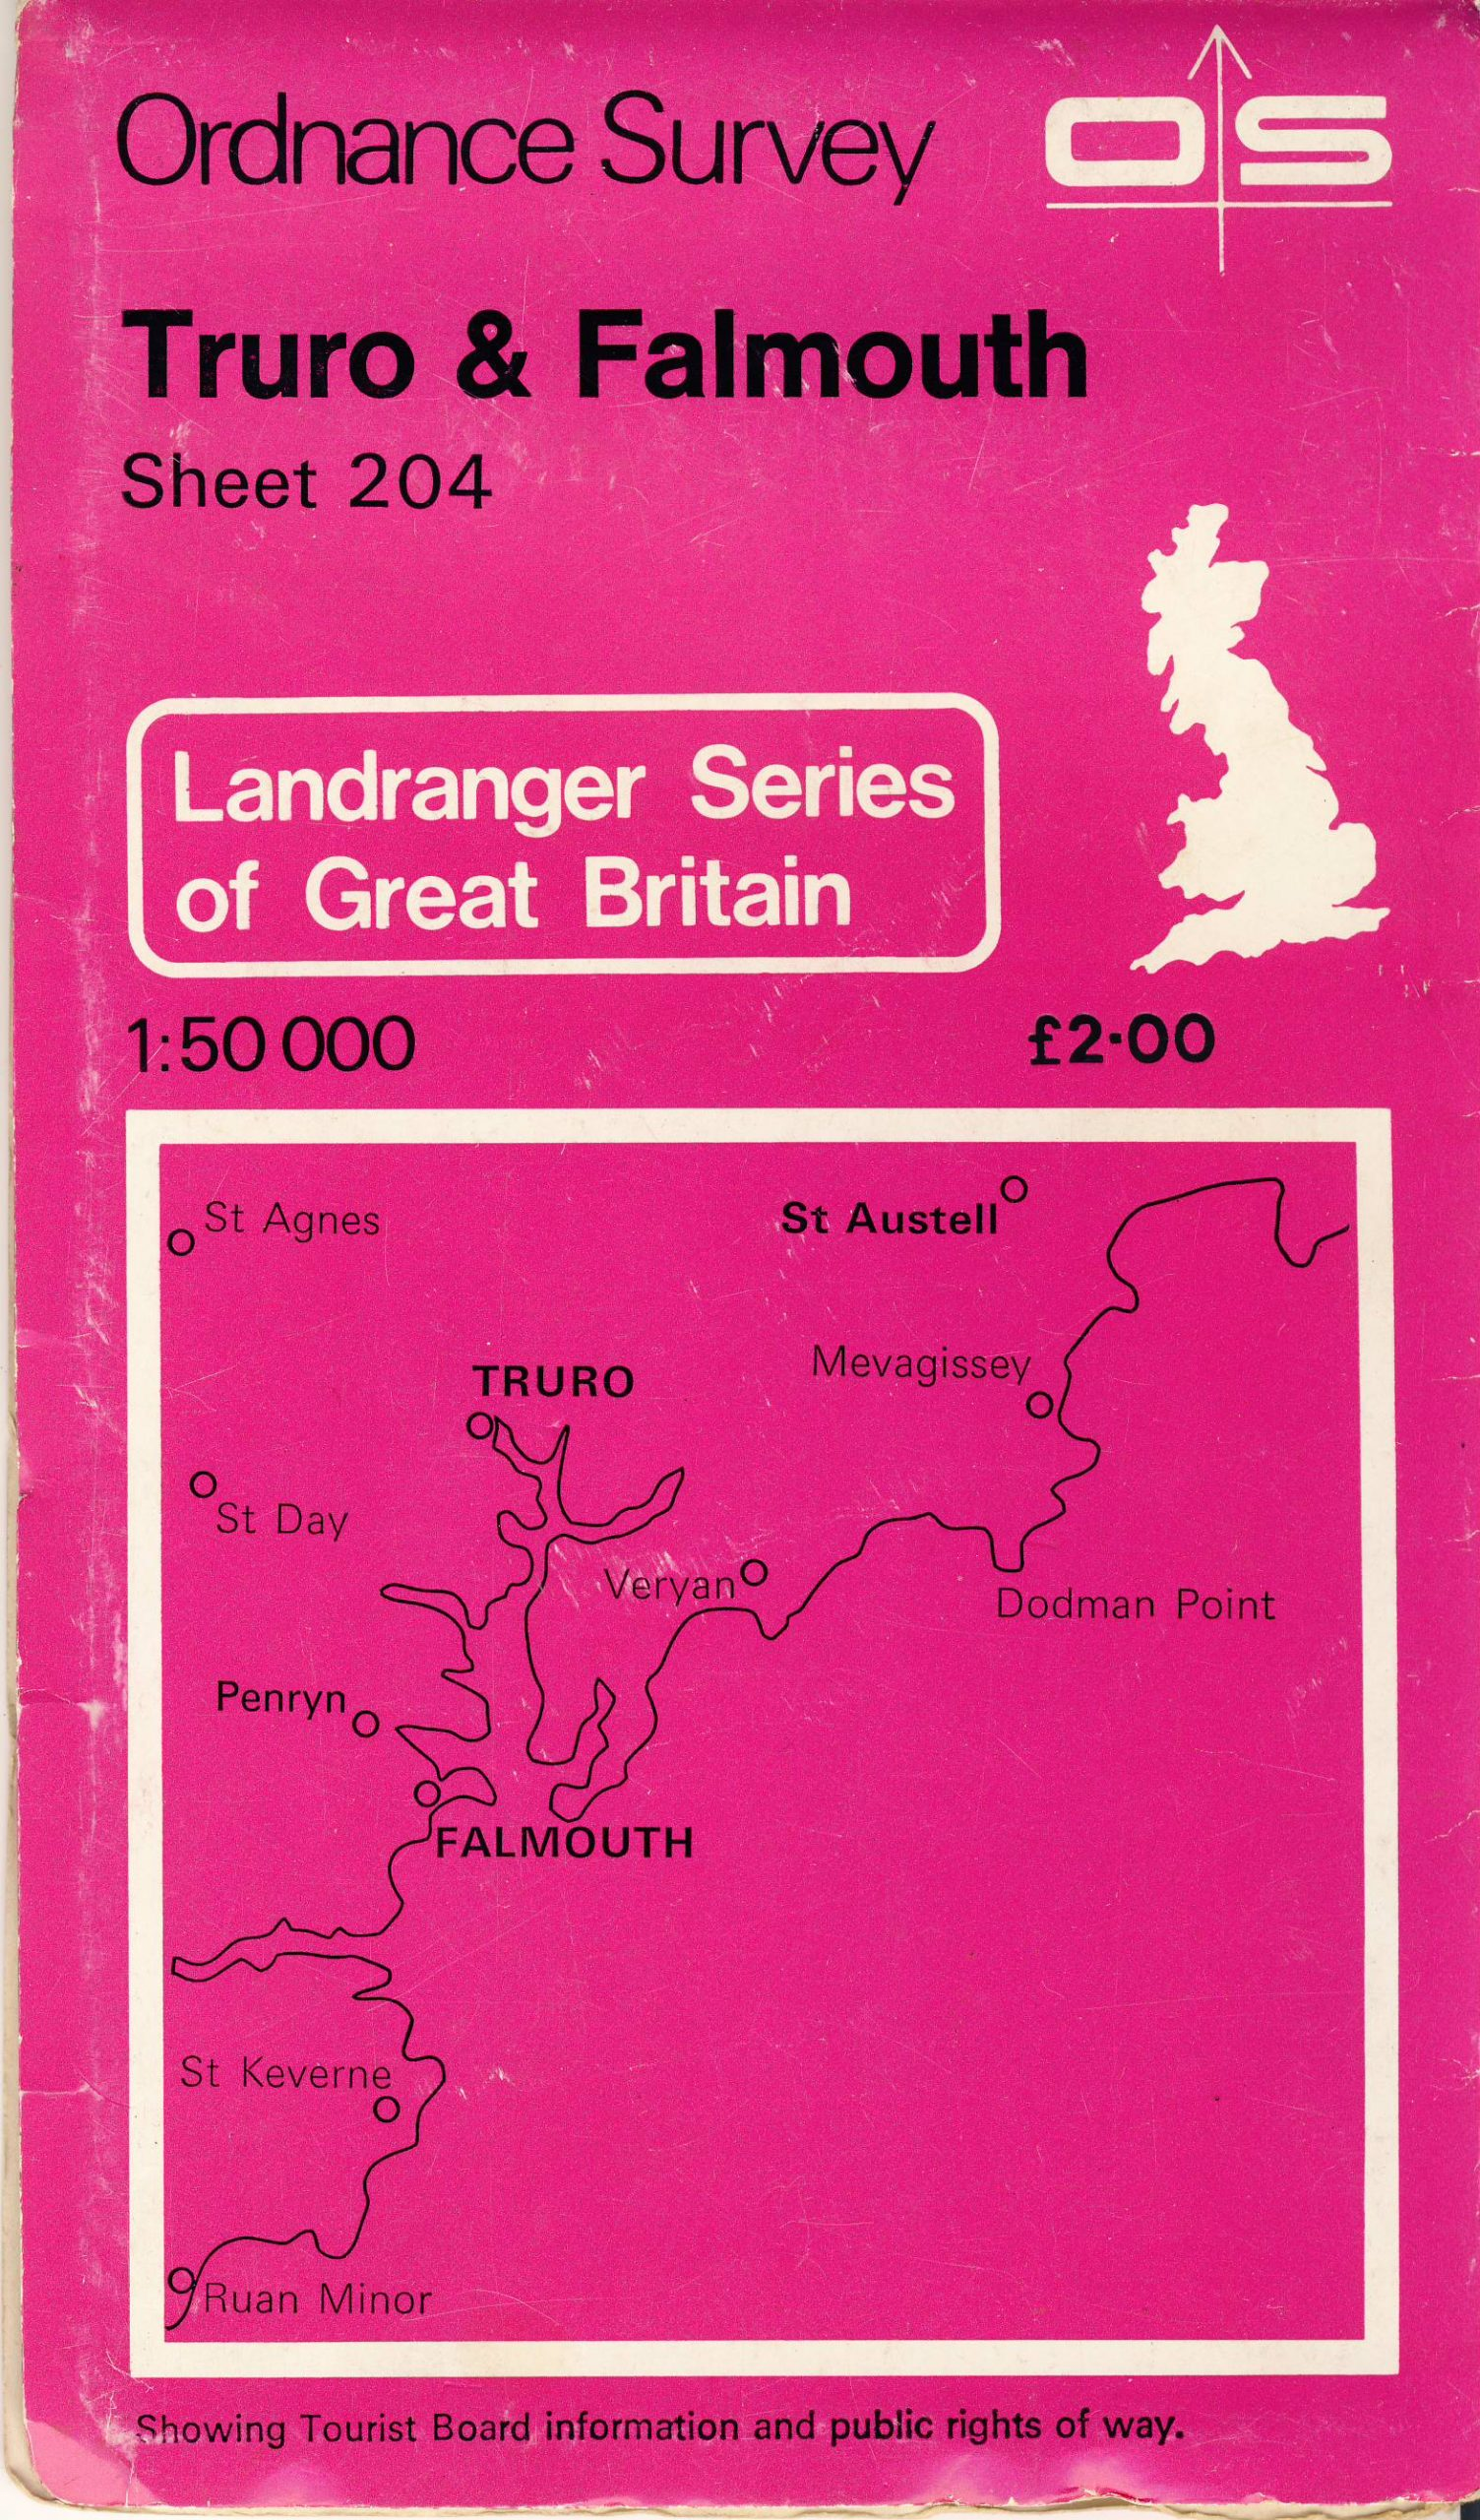 TRUTO AND FALMOUTH 204 1979 Landranger Series Great Britain OS vintage map refS5 Ordnance Survey publication - measures approx  22cm x  13cm folded - map on one side - other side is blank - pre-owned in very good condition.